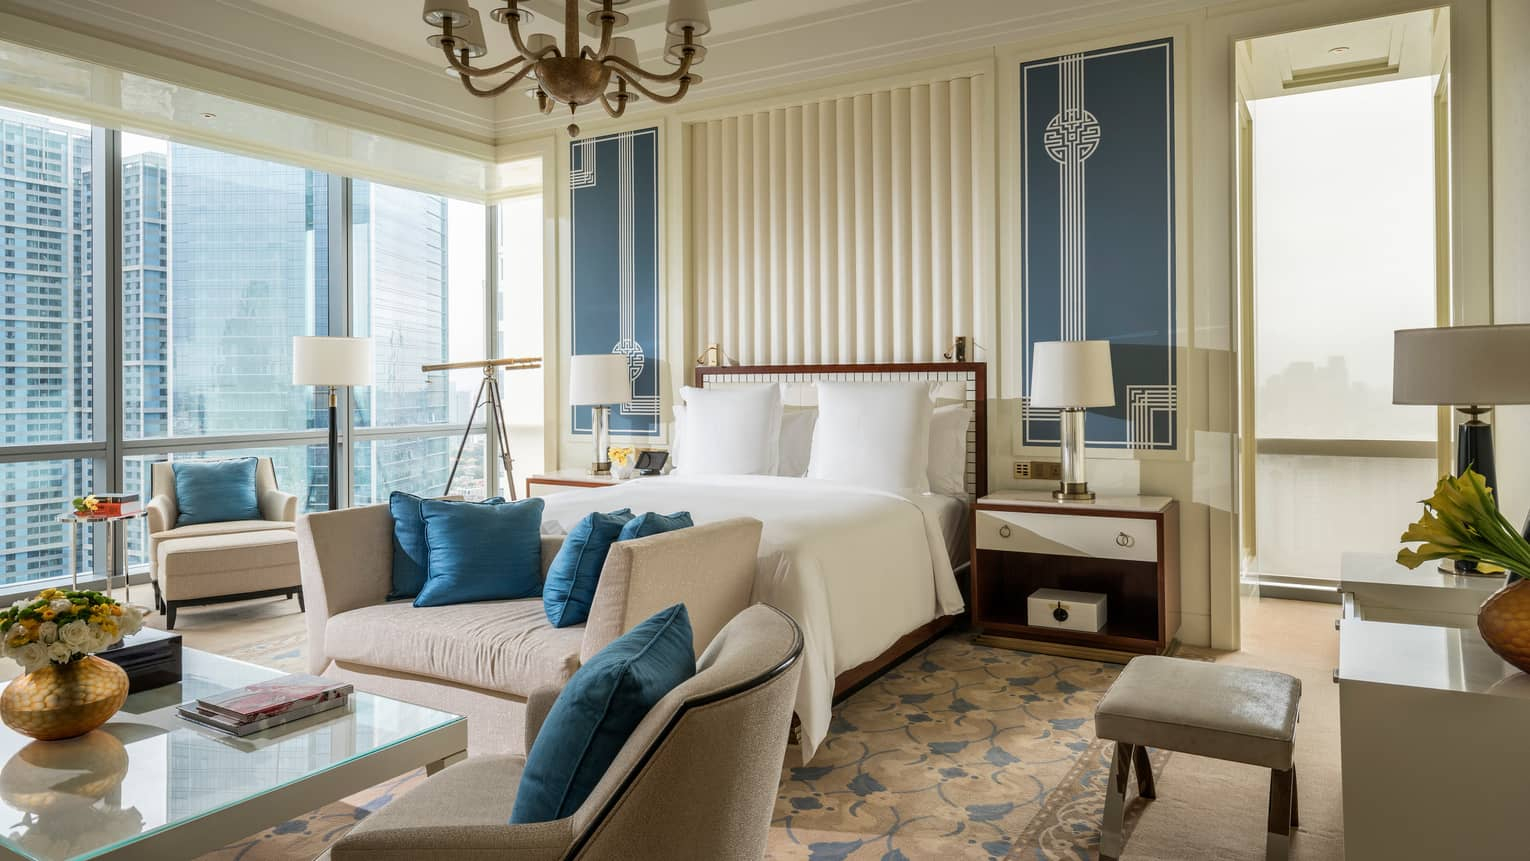 Chairman Suite large bed, plush sofas with blue cushions, corner windows with city views